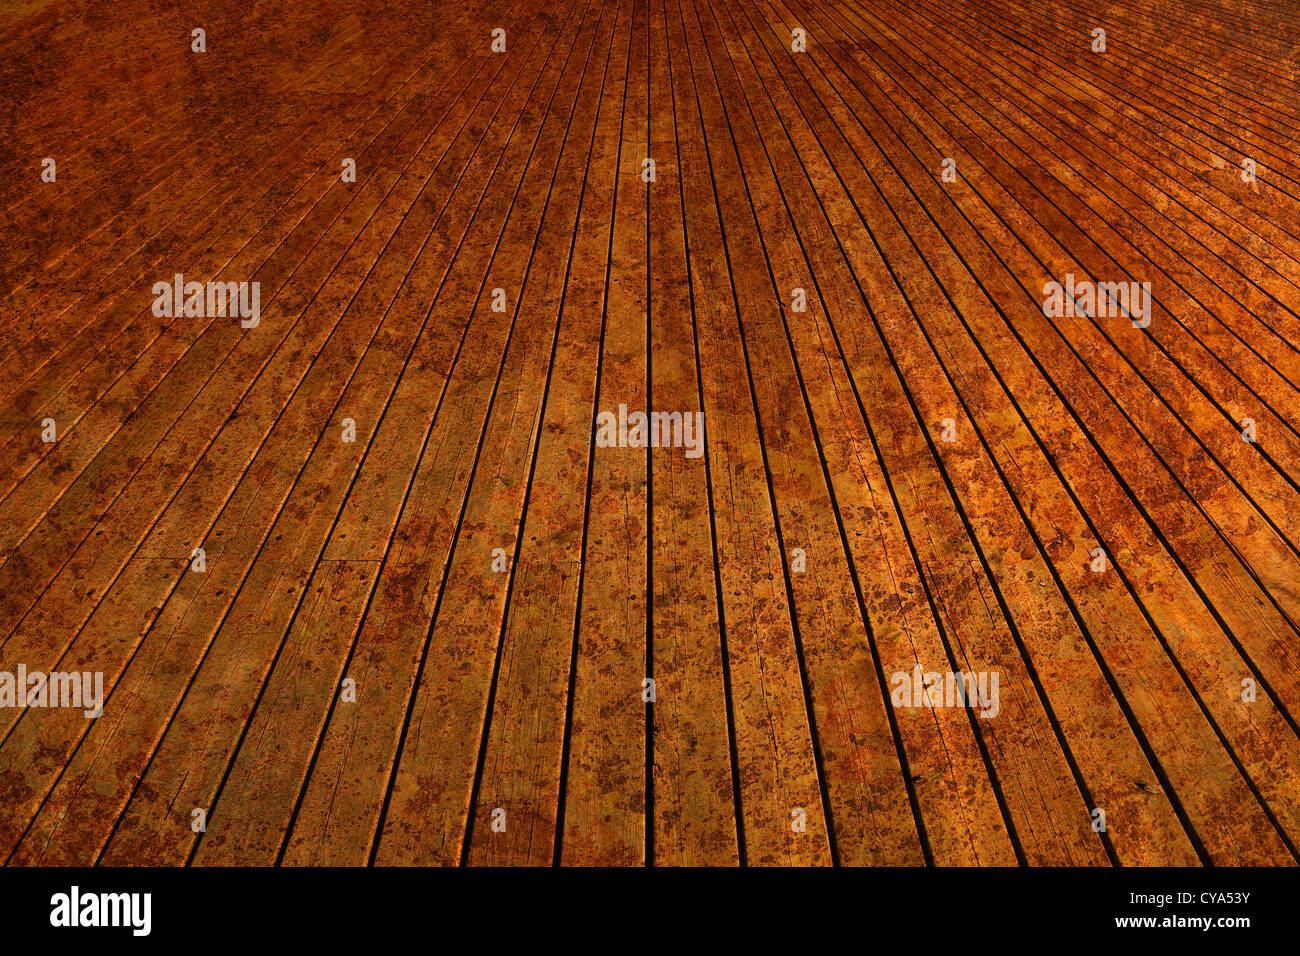 Wooden planks in spots. - Stock Image